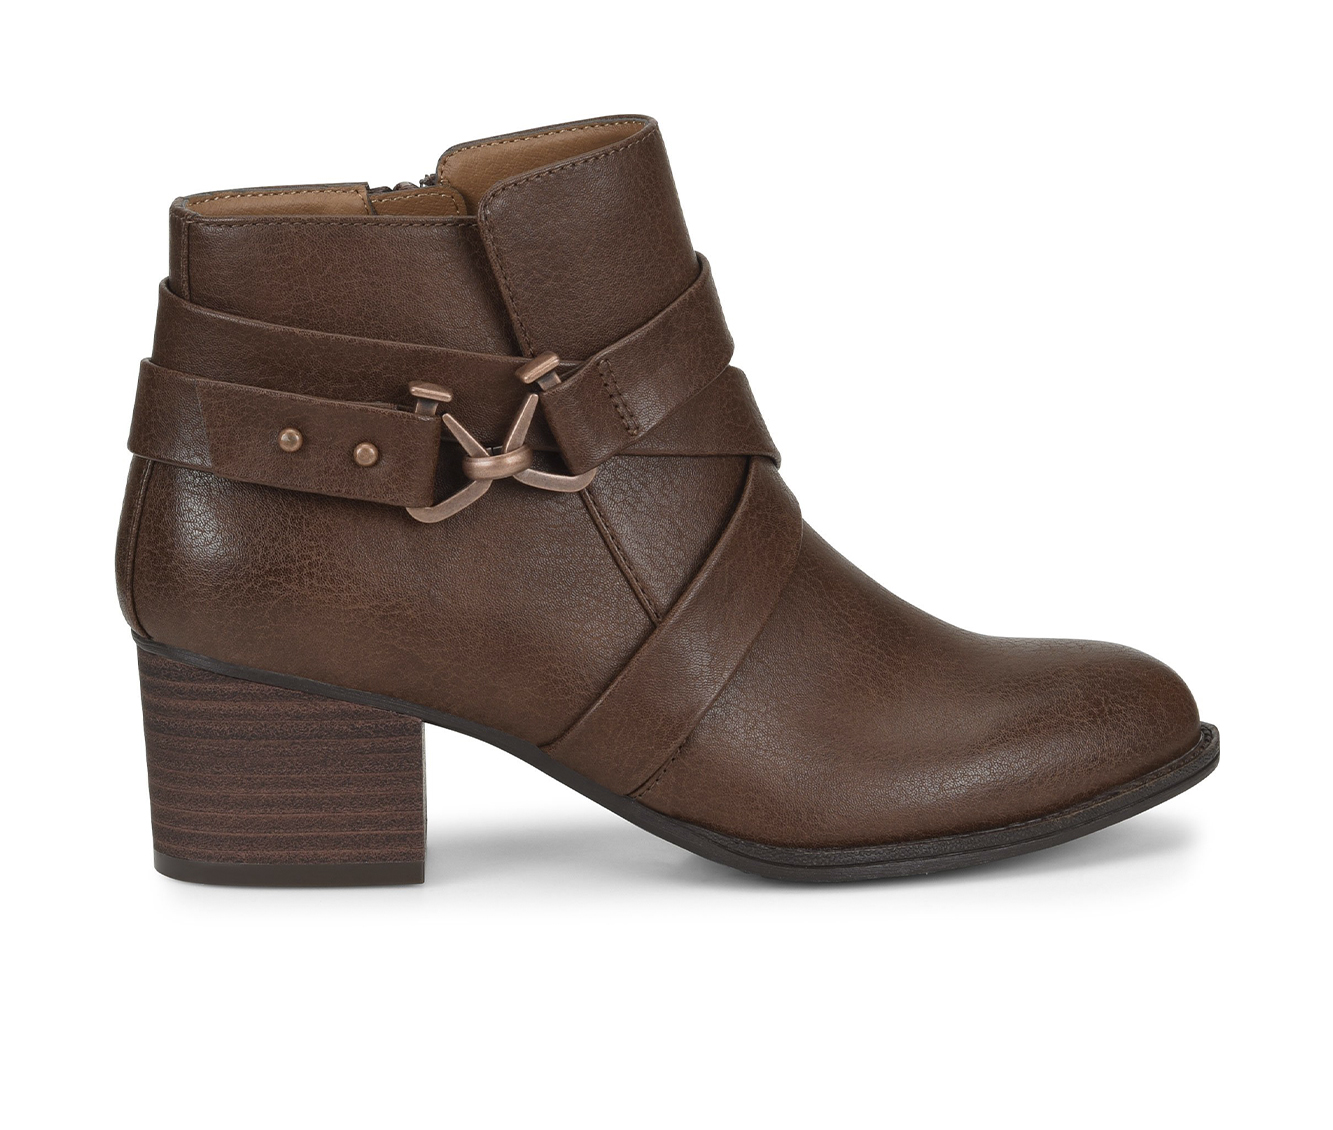 EuroSoft Witlee Women's Boots (Brown - Faux Leather)